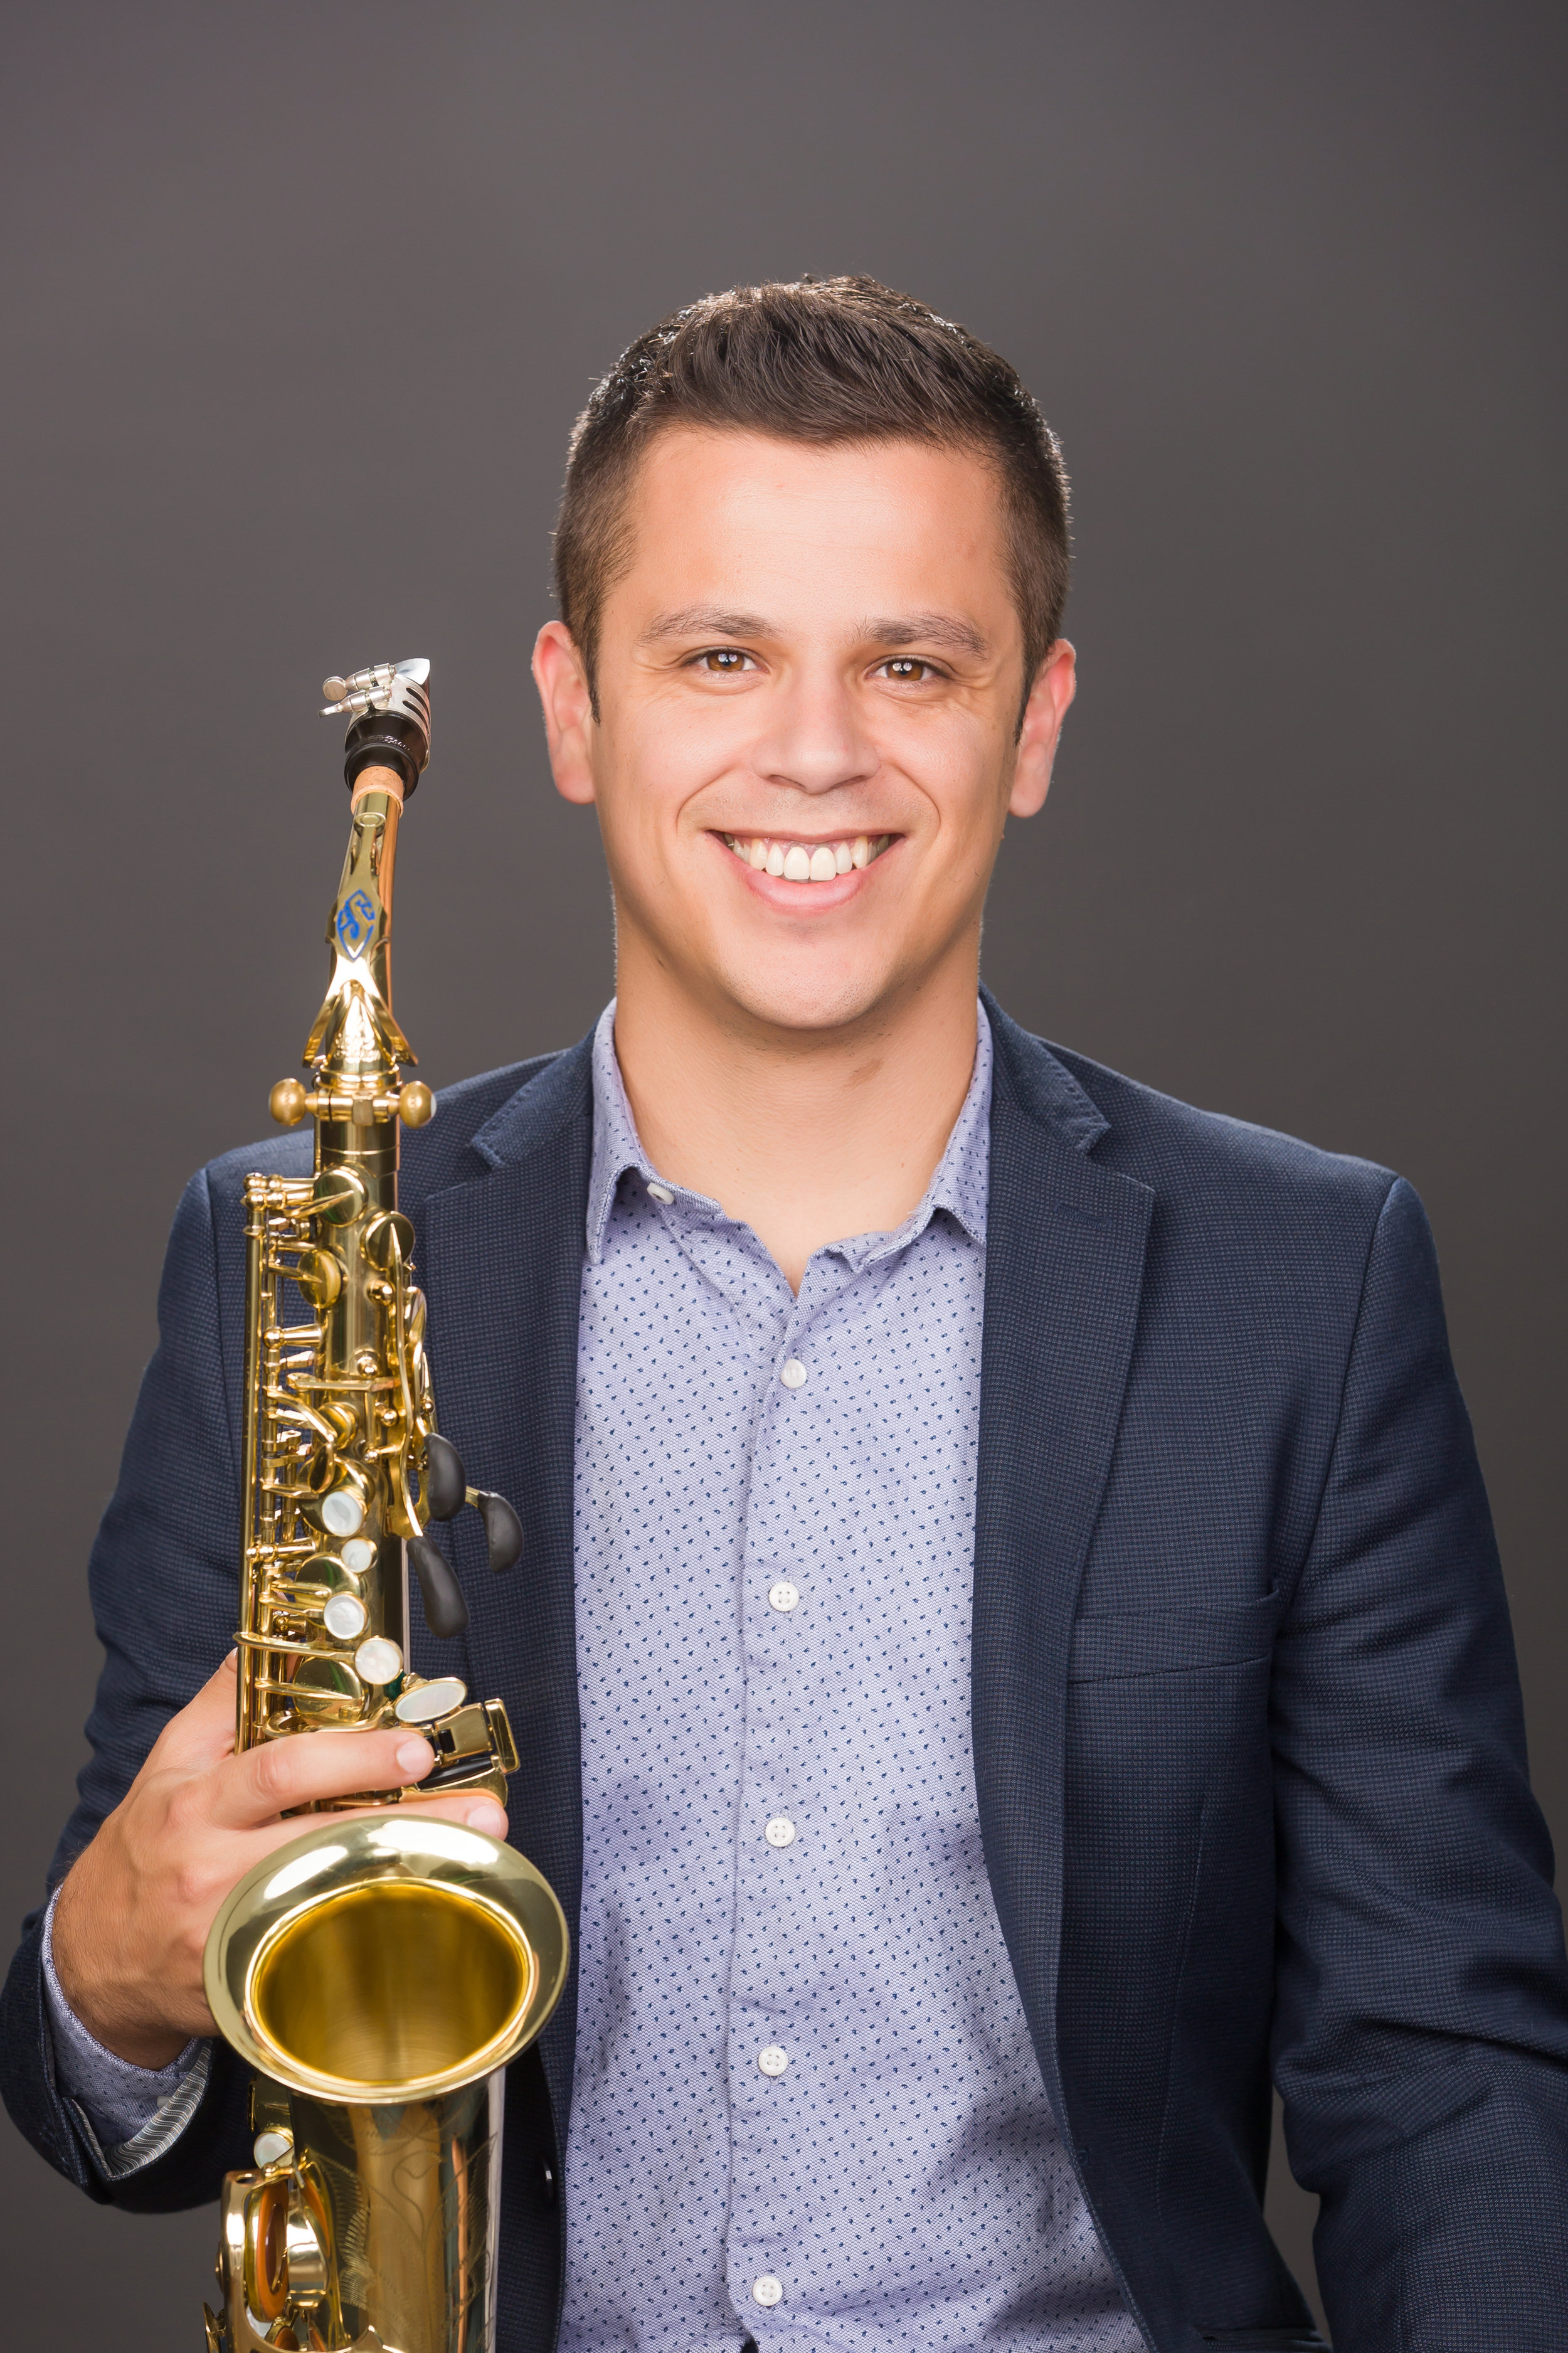 Dr. Rami El-Farrah Concert Saxophonist, Educator & Arranger - Dr. Rami El-Farrah is a concert saxophonist best known for his work as a soloist and member of the Zenith Quintet, Bel Cuore Quartet and the Austin Saxophone Ensemble. As an award-winning soloist and chamber musician, Dr. El-Farrah has performed across the United States and throughout Europe. Dr. El-Farrah has been featured on several musical albums, as well as new albums with Bel Cuore Quartet and Austin Saxophone Ensemble. In addition to concertizing Dr. El-Farrah teaches saxophone at The University of Texas at San Antonio, where he also leads the university's saxophone ensemble and teaches Jazz History.